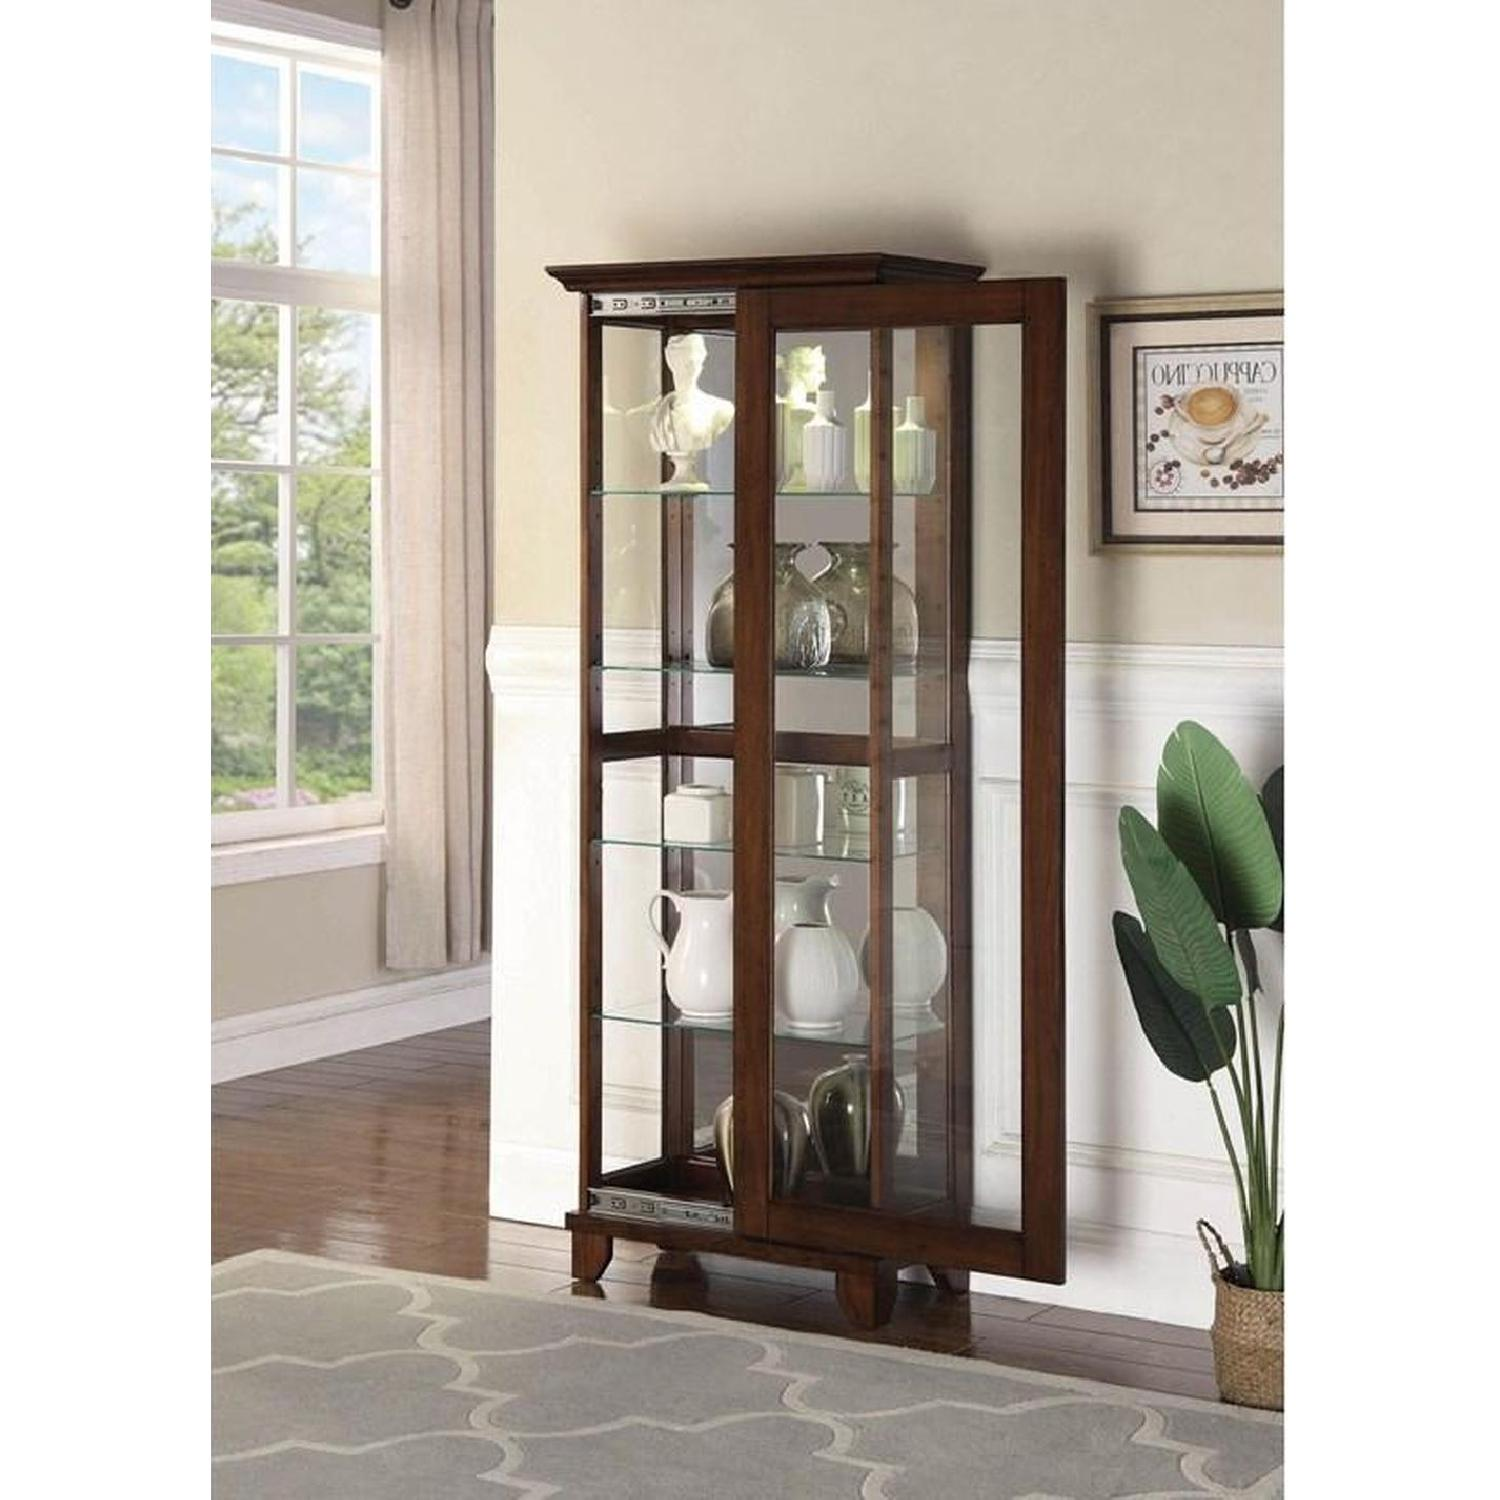 Curio Cabinet in Chestnut Finish w/ Glass Panels - image-7